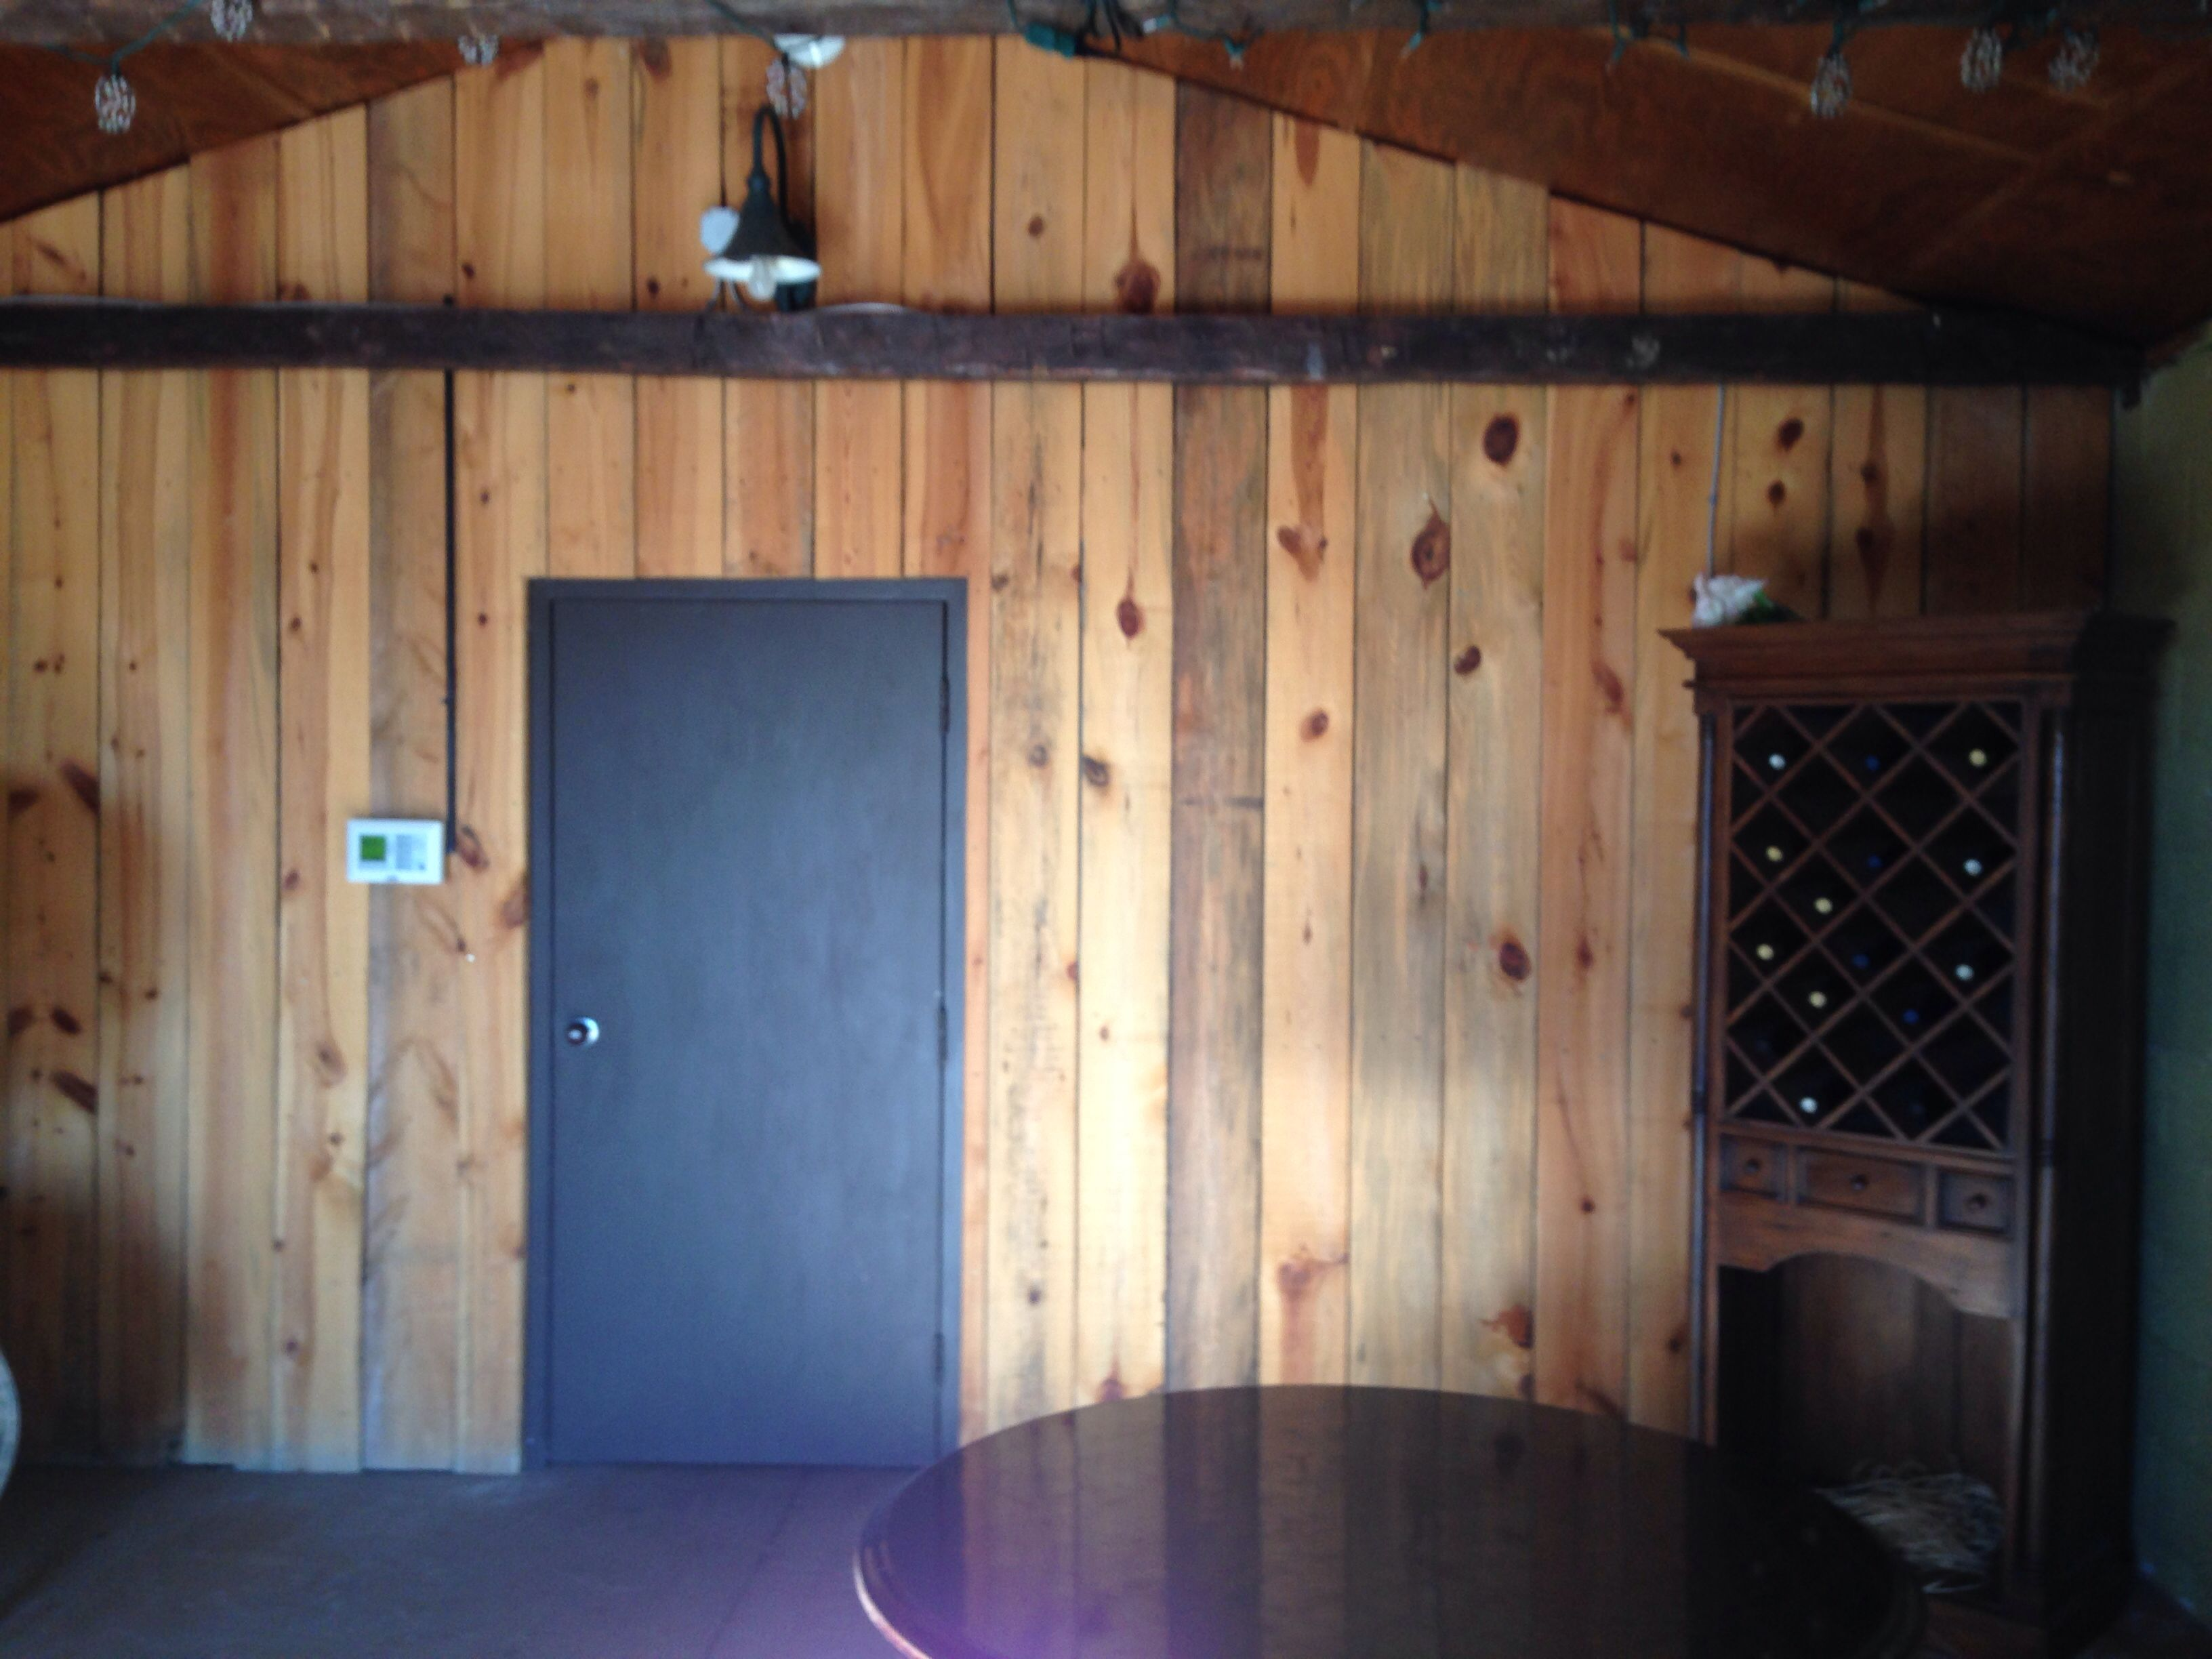 Talon Winery's Entrance Guest Book Room Of Barn